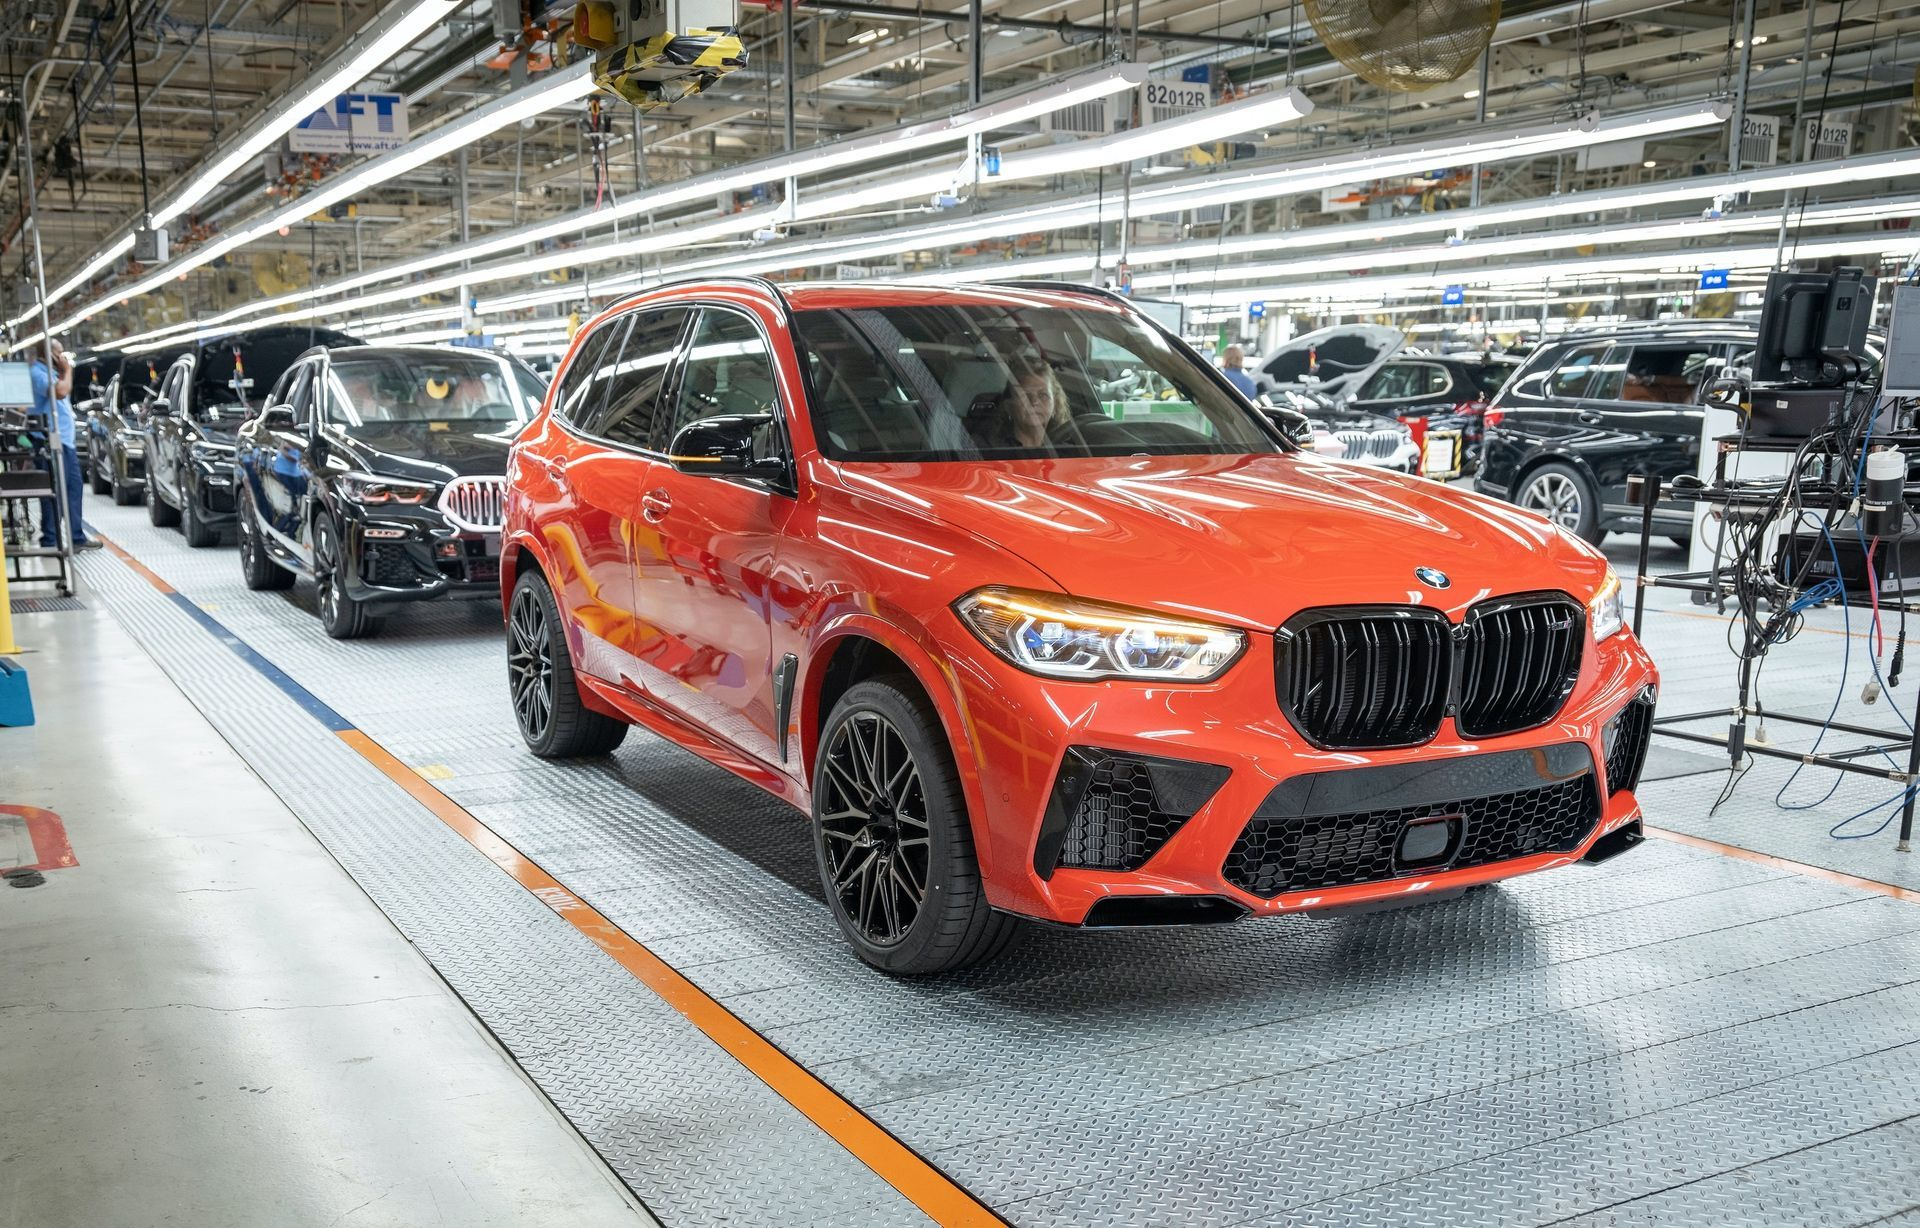 The 5 millionth car, an X5M, on 6/8/20 - File: 060720GR56